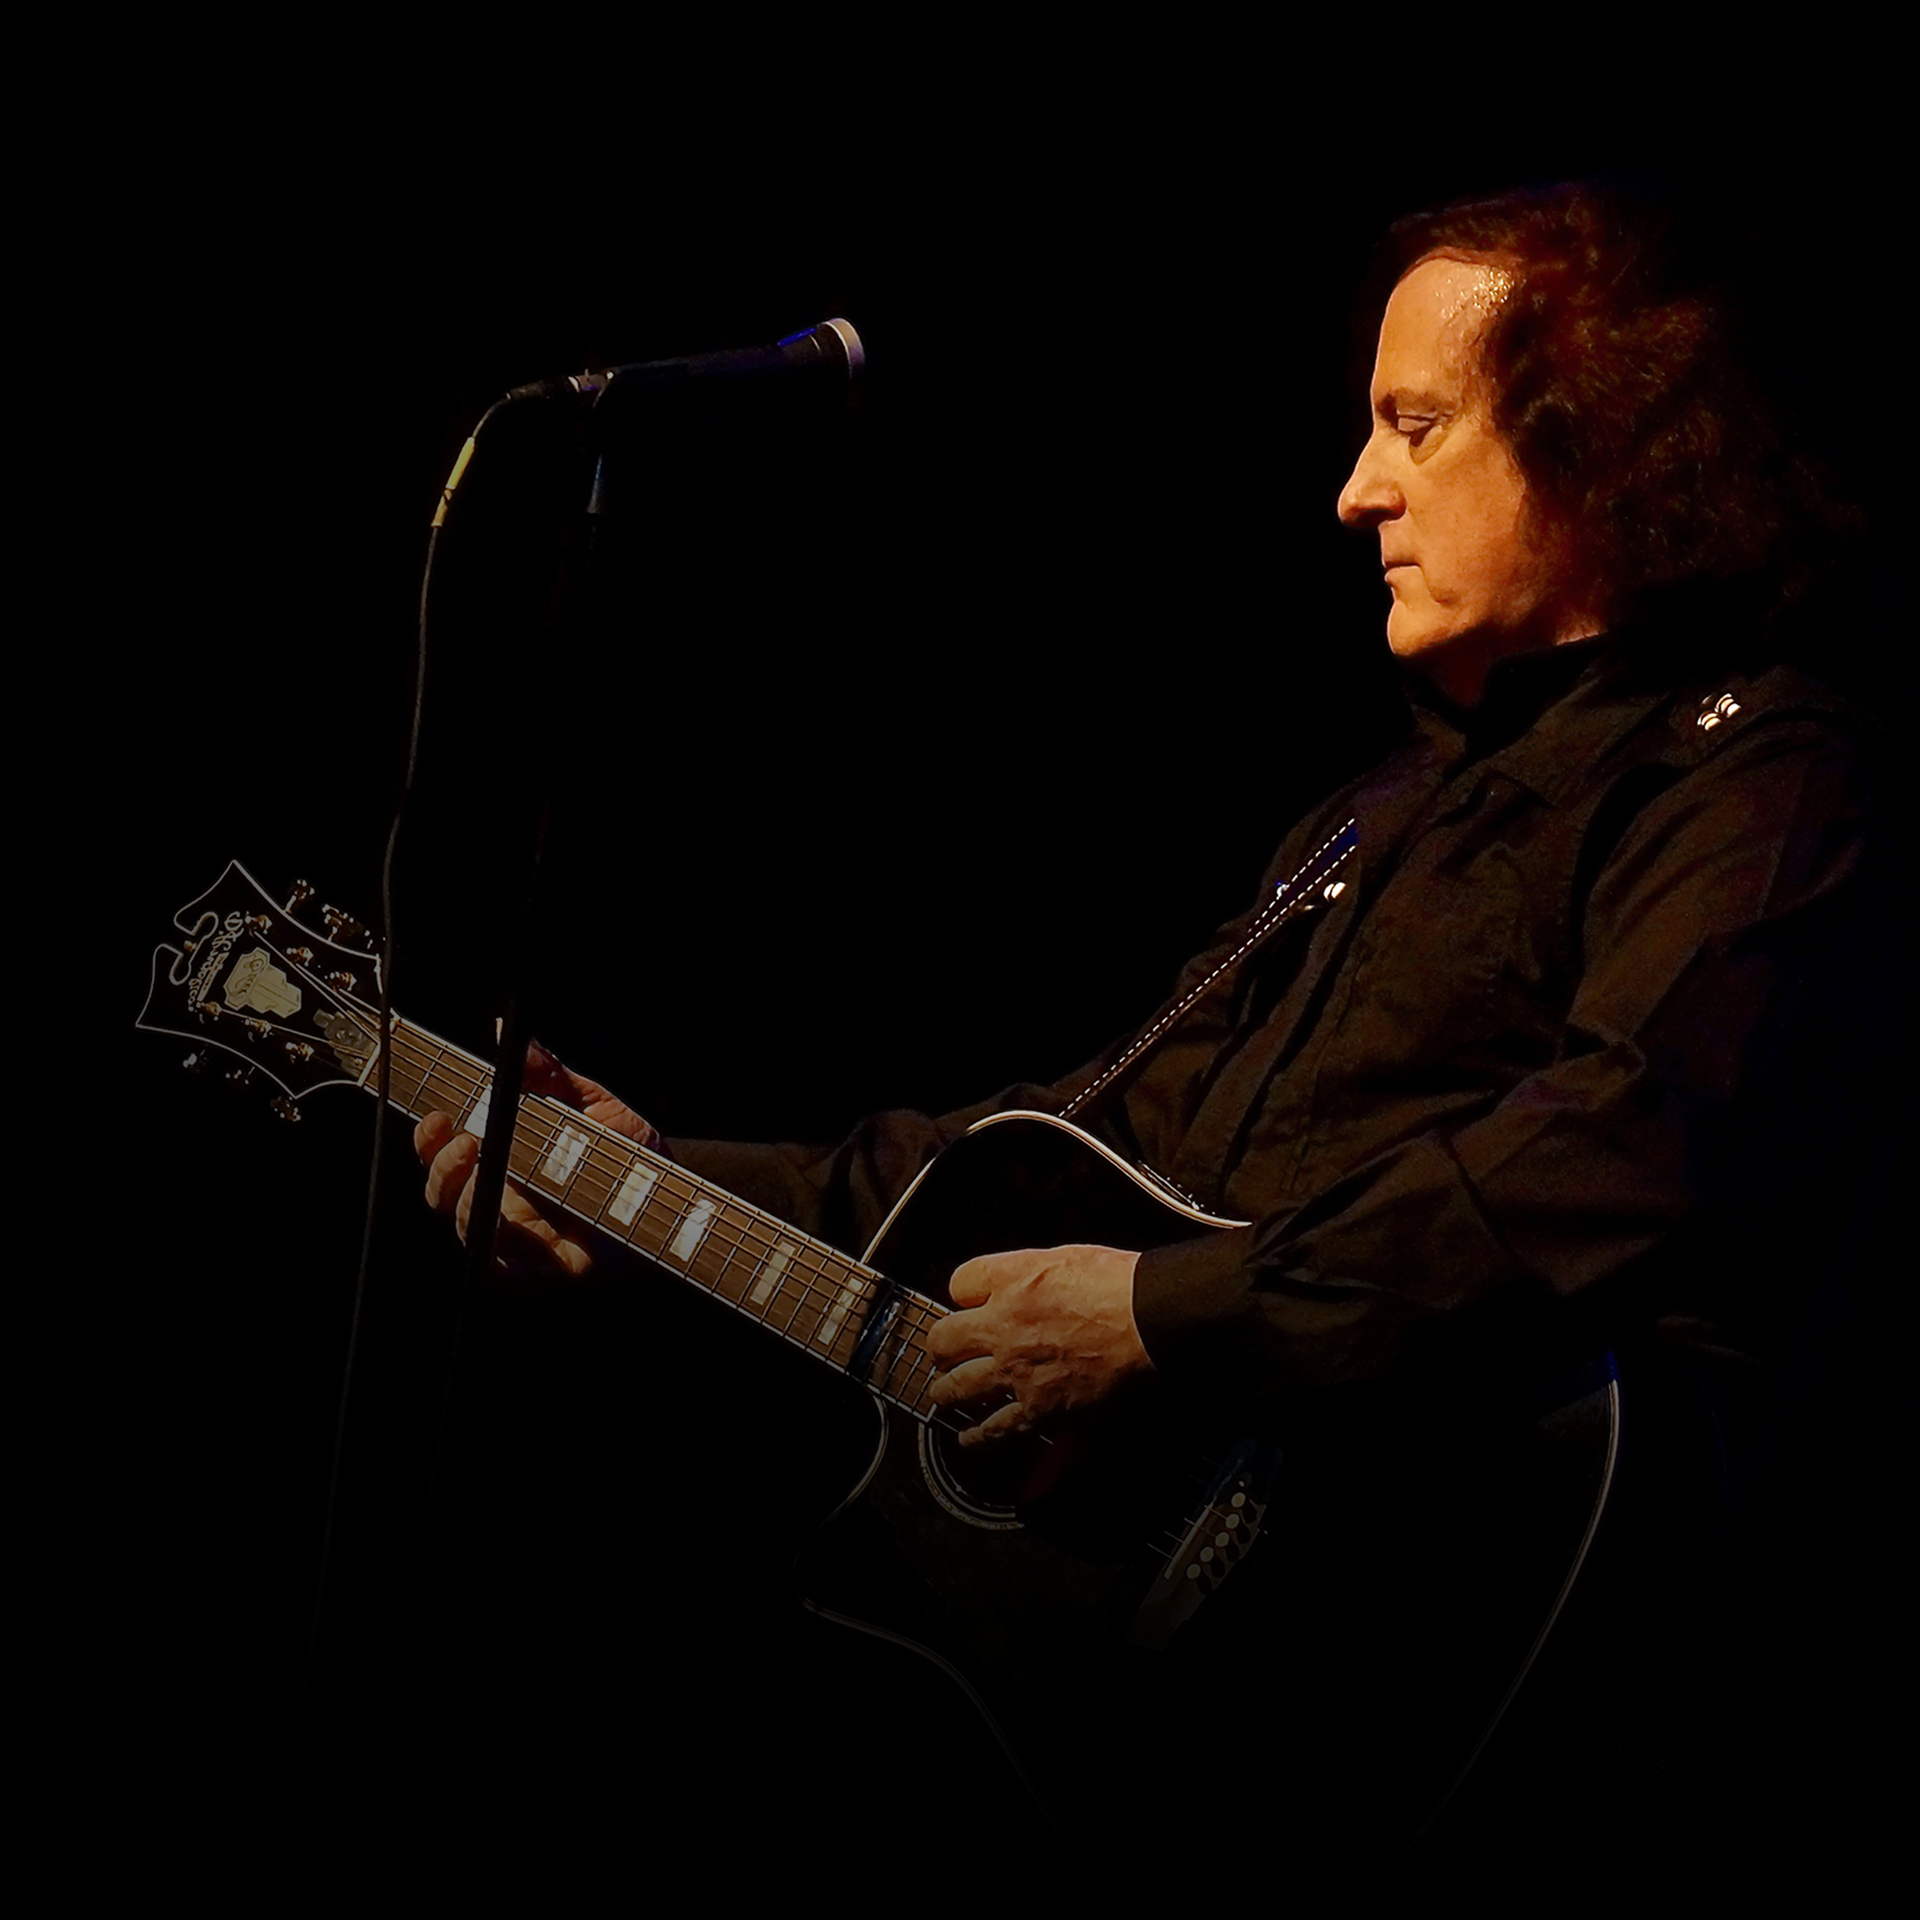 Gettin' Together with Tommy James